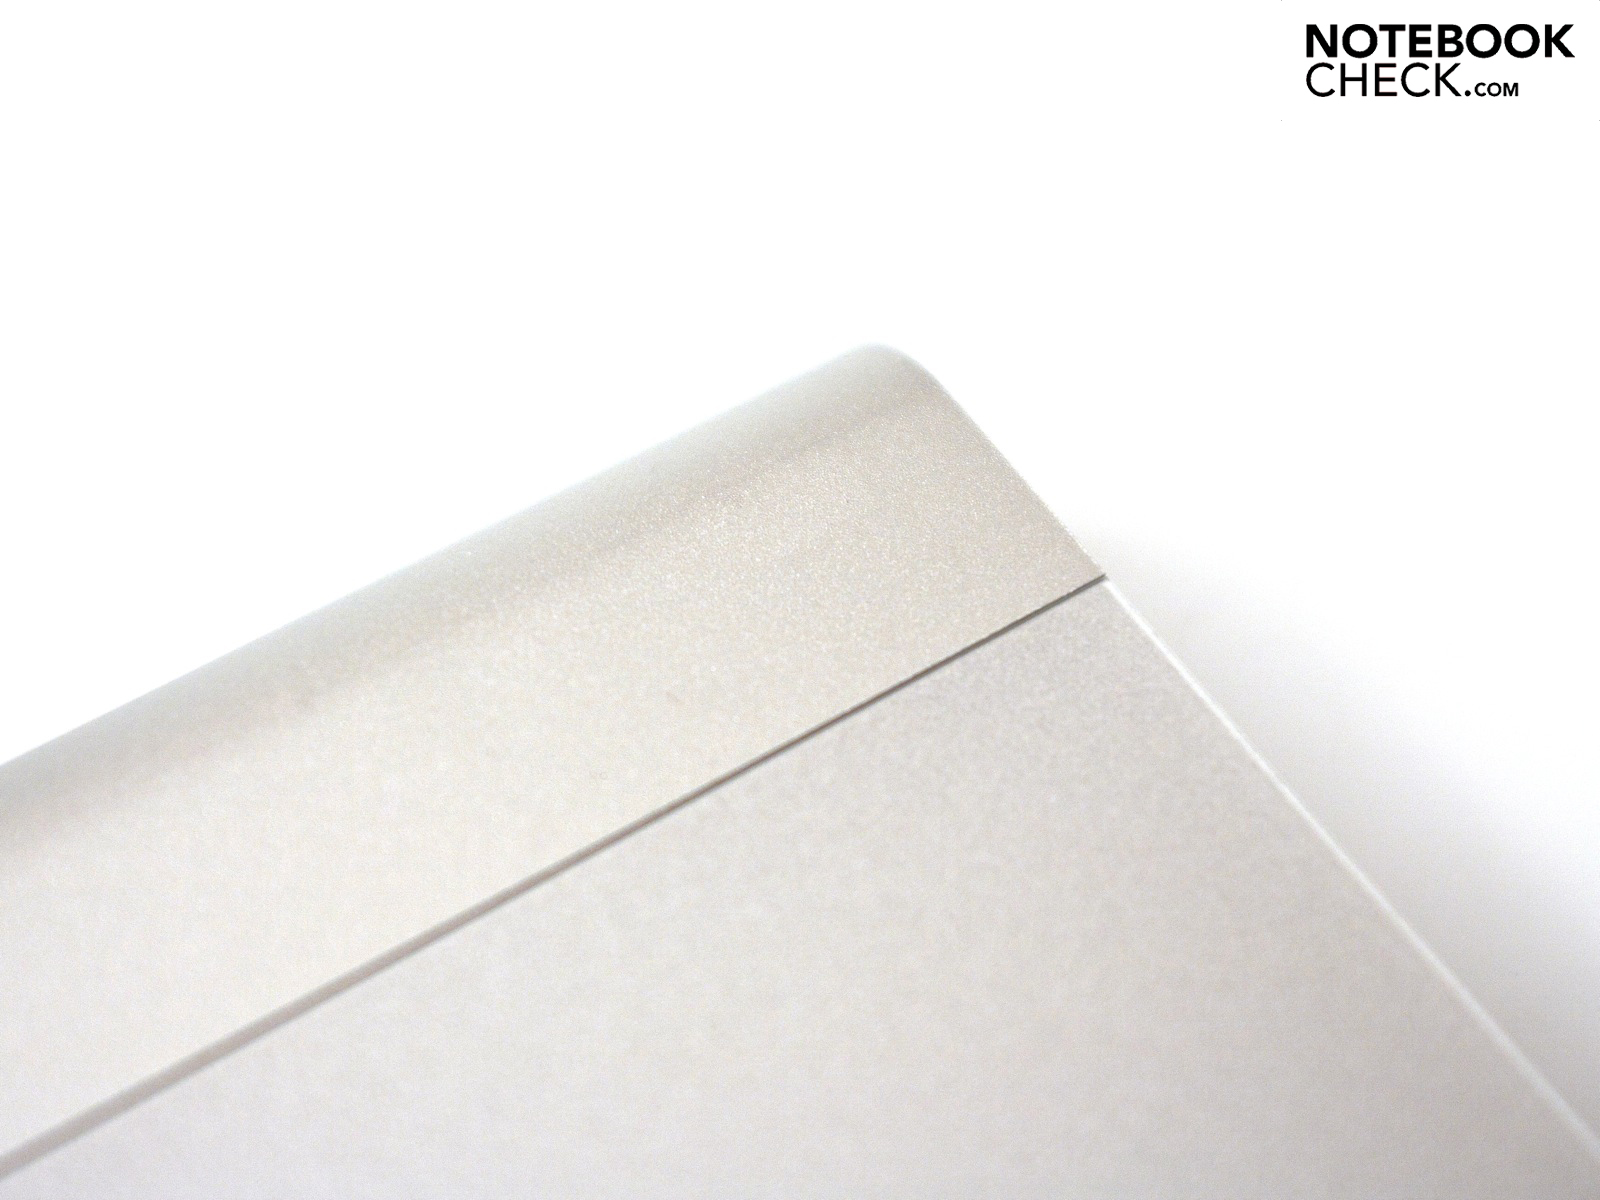 Review Apple Magic Trackpad Mouse Replacement